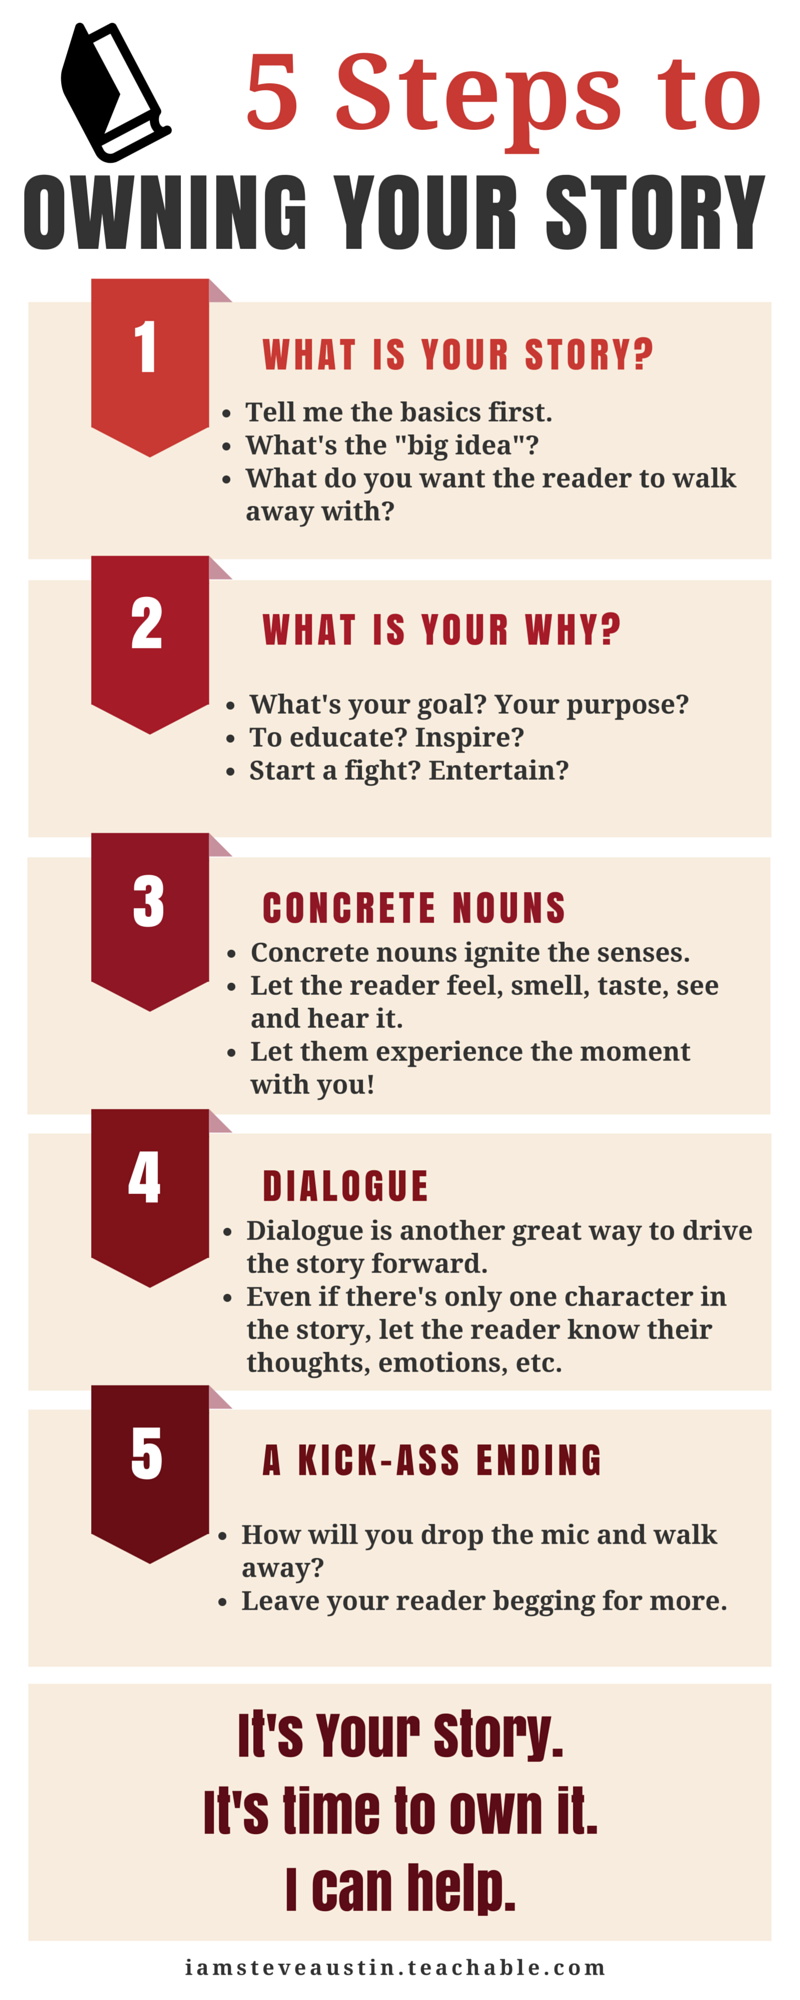 5 steps to owning your story